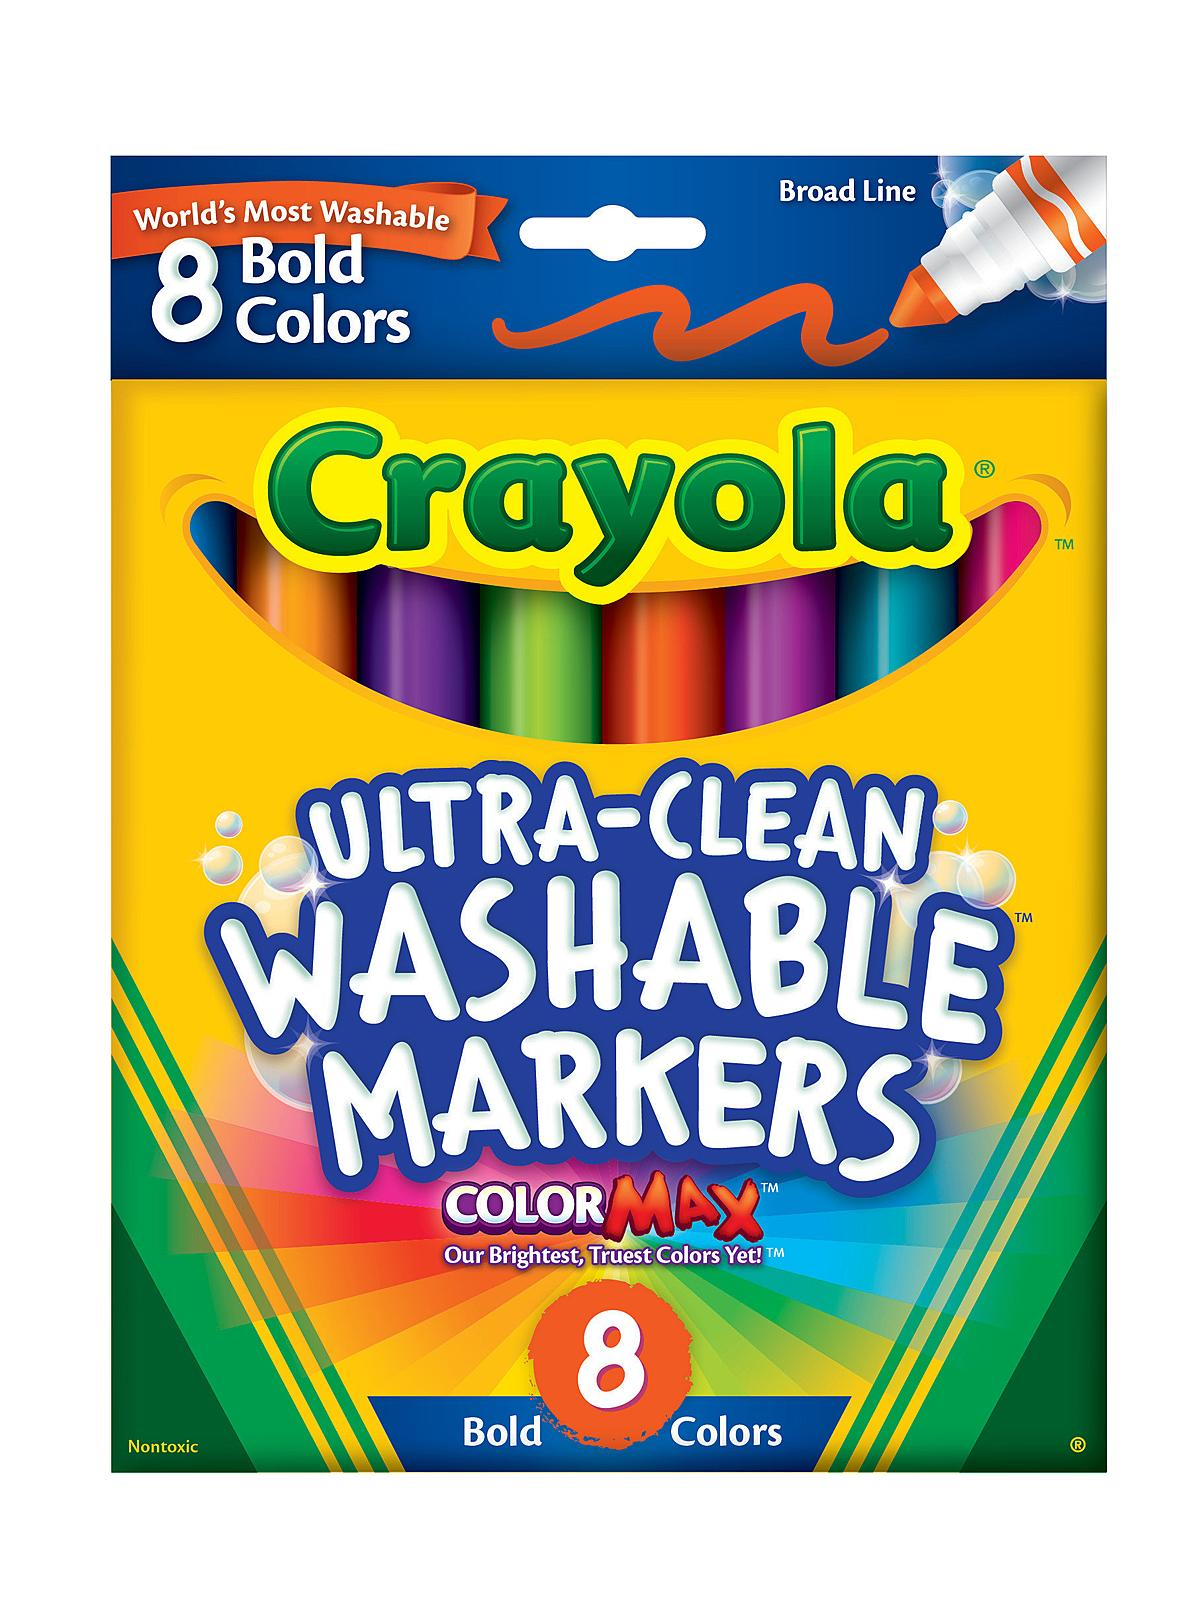 Crayola Bold Colors Ultra-Clean Washable Markers | MisterArt.com